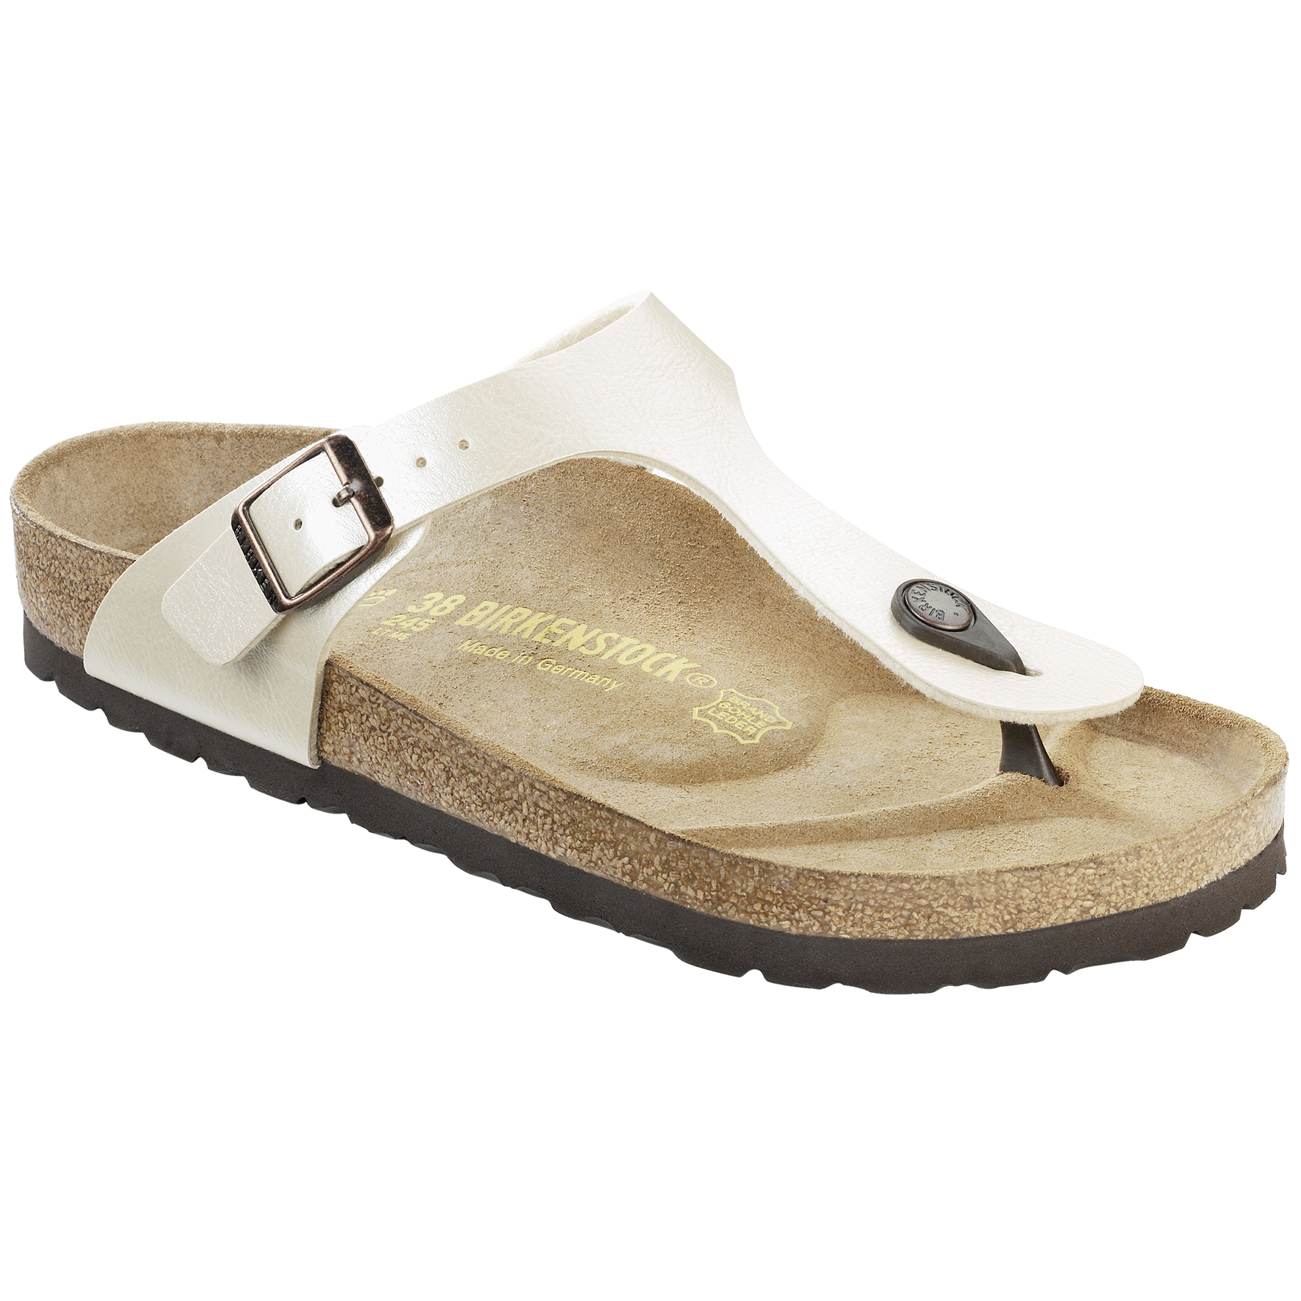 be92c6b585b Womens Birkenstock Gizeh Birko-Flor Summer Holiday Casual Beach Flip Flop  UK 3-9